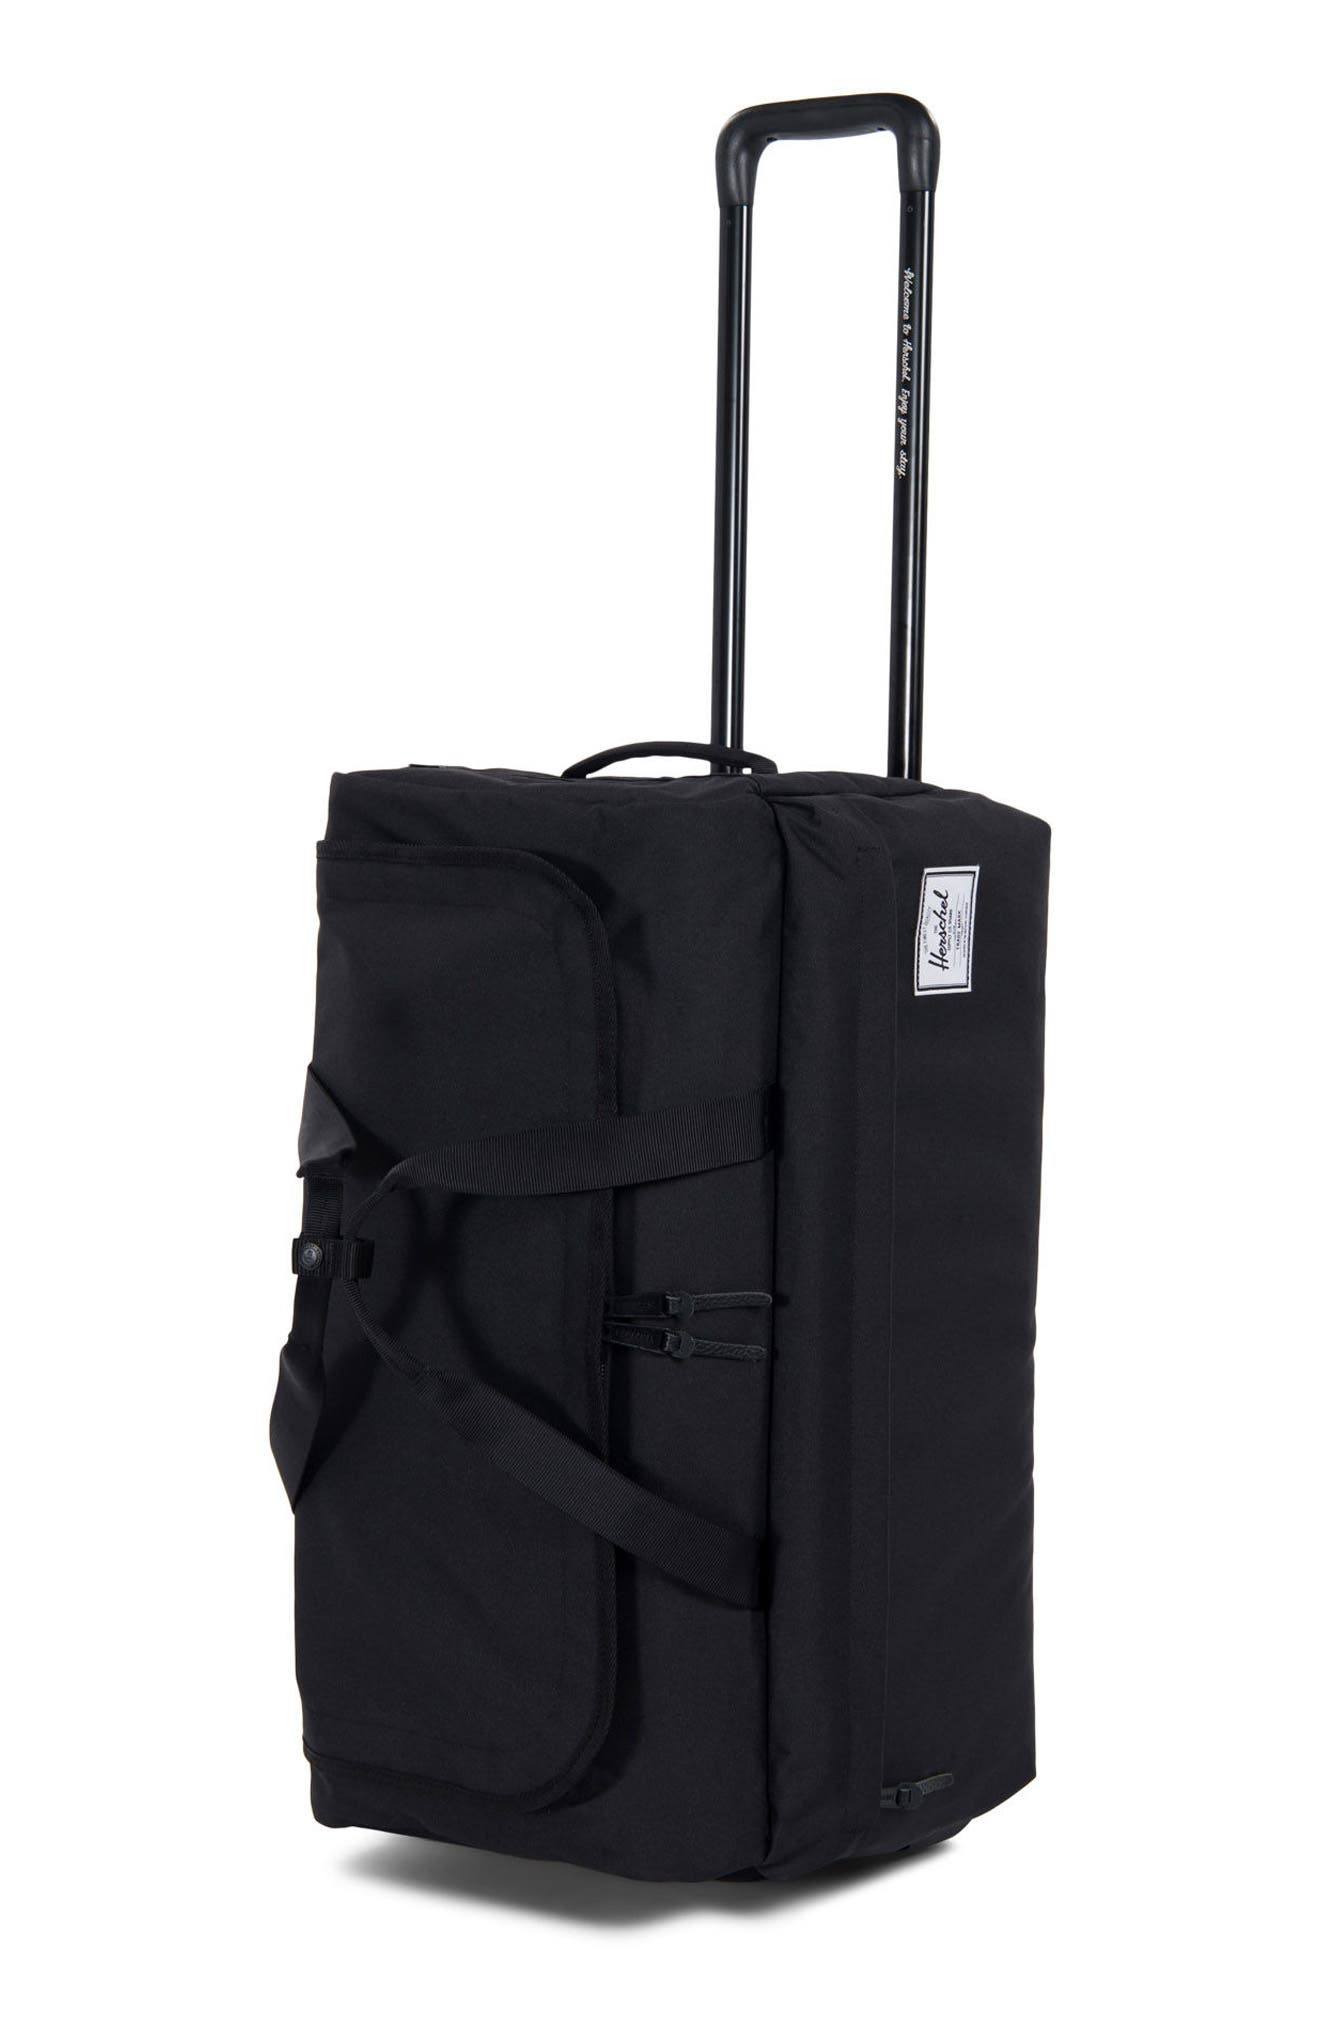 Herschel Supply Co. Wheelie Rolling Carry-On